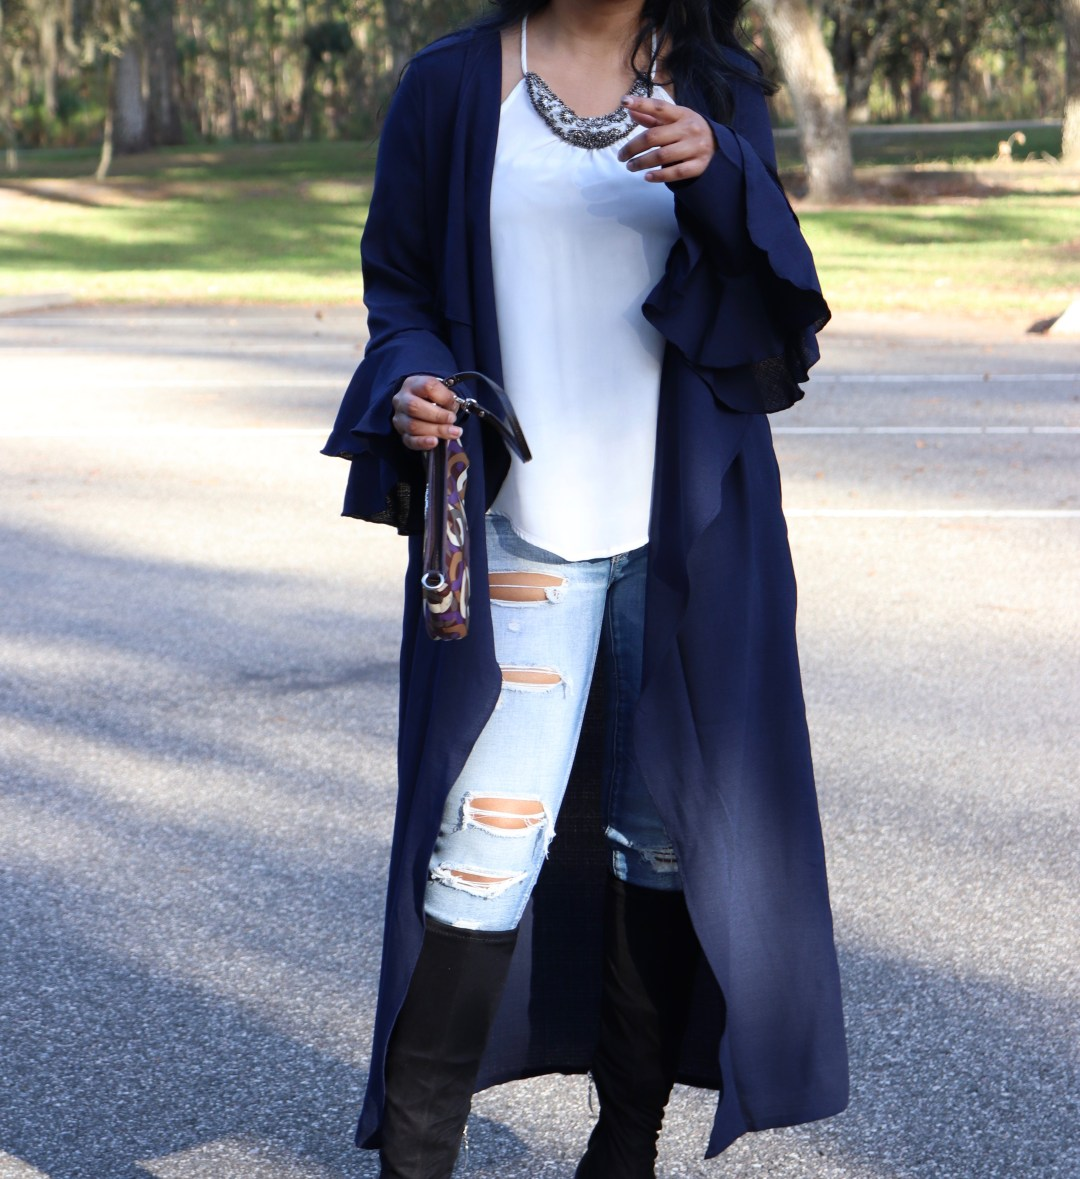 chic-edgy-fall-outfit